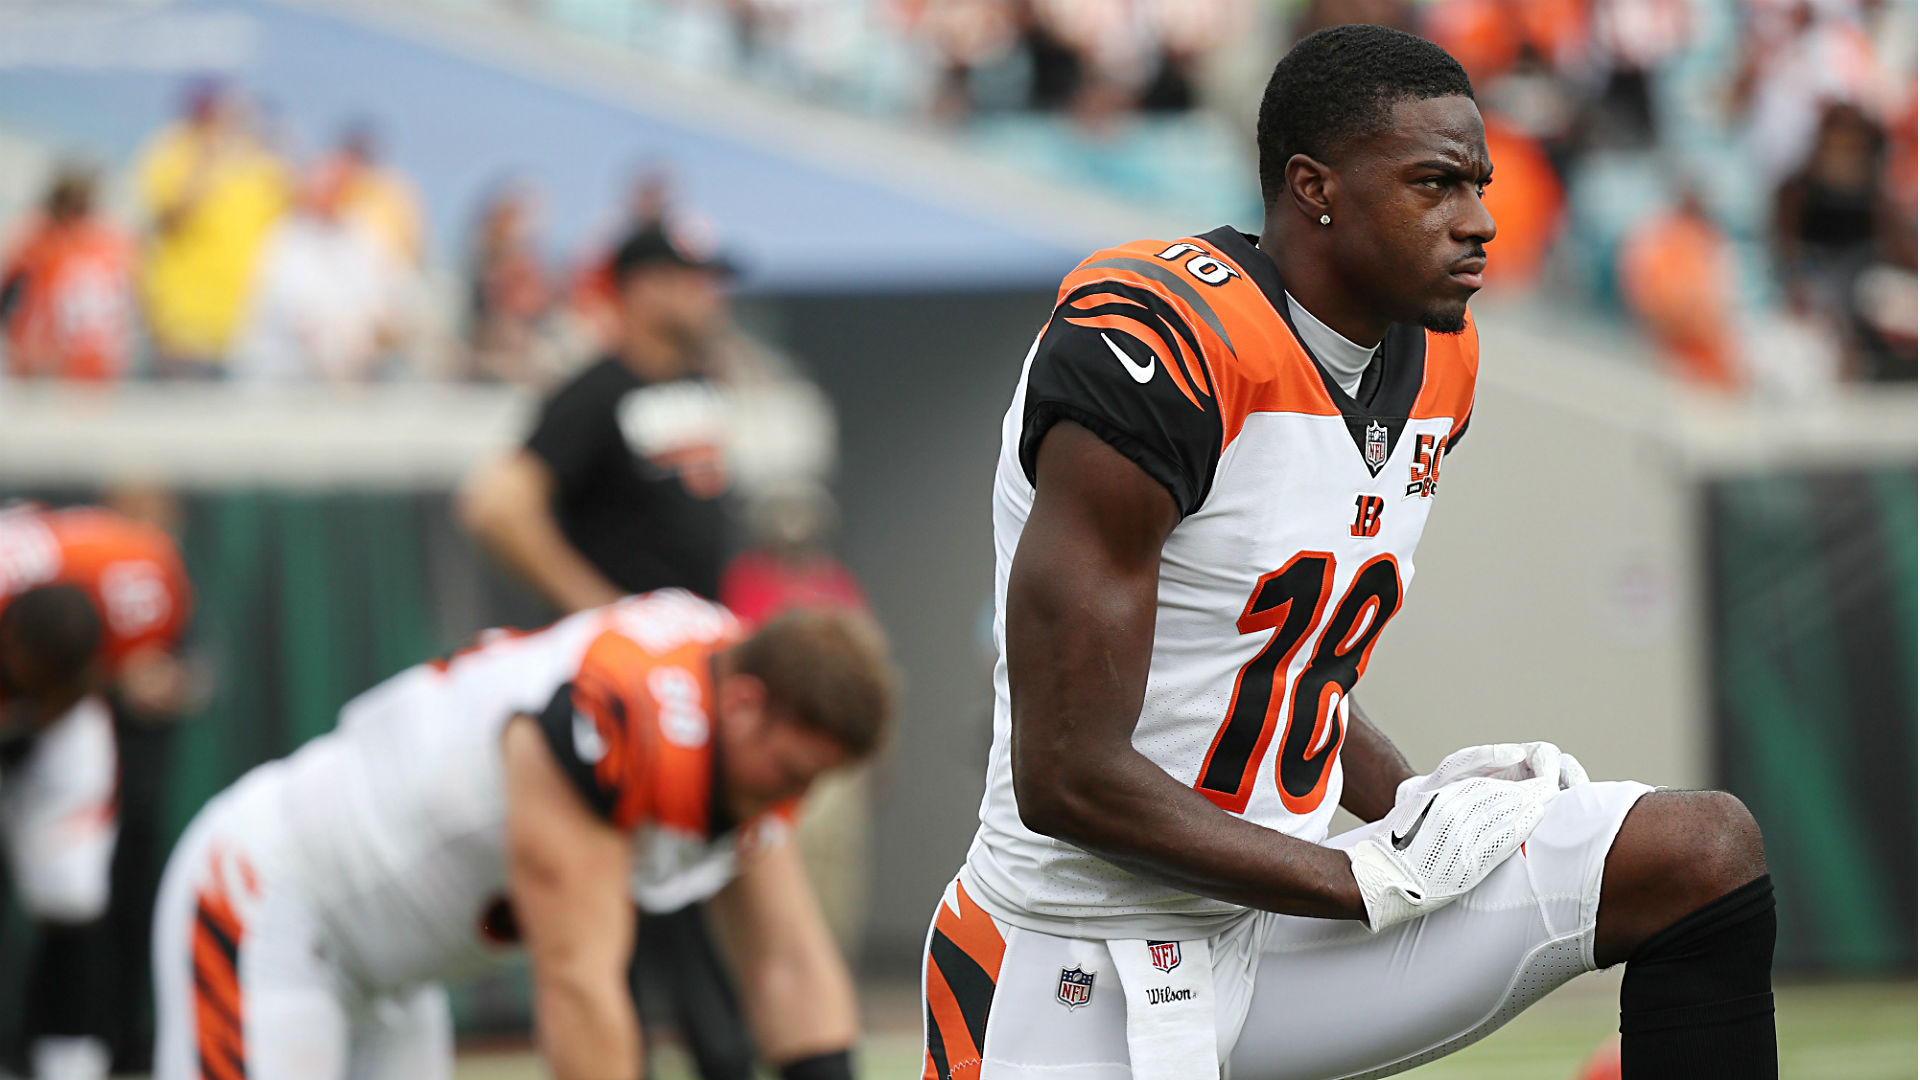 Bengals are a mess again so no wonder A J Green would snap